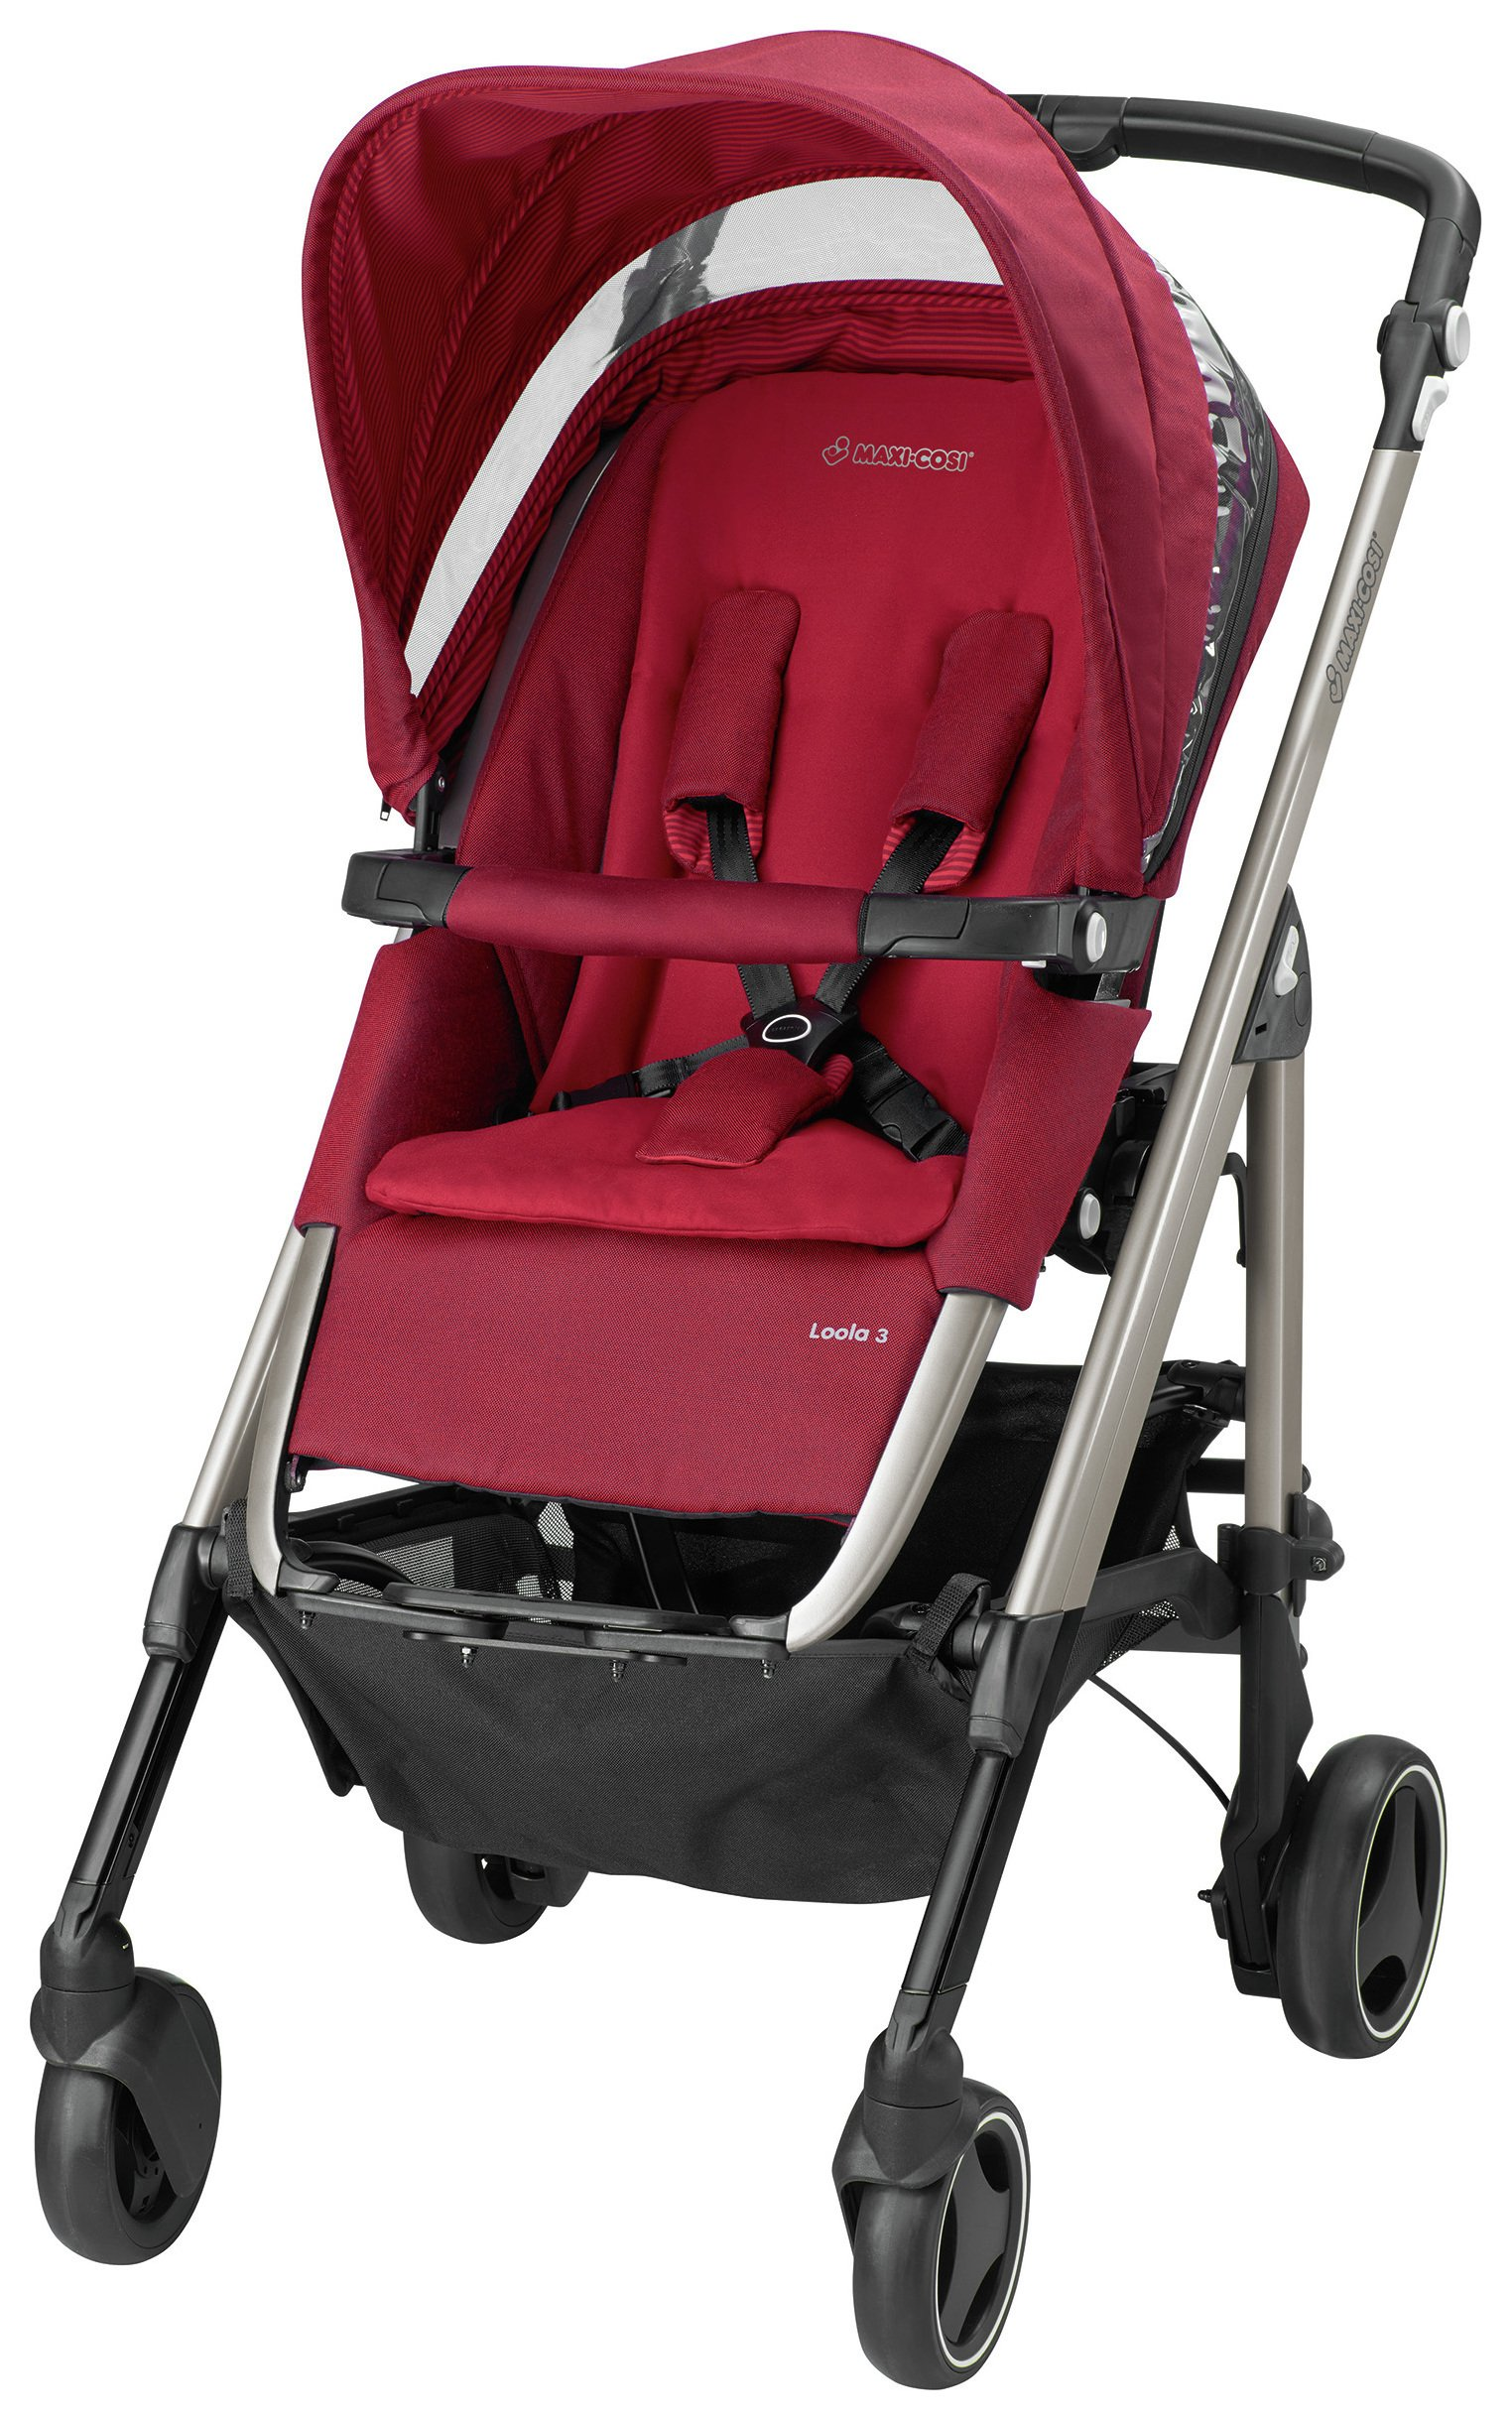 Maxi-Cosi Loola 3 Pushchair - Robin Red